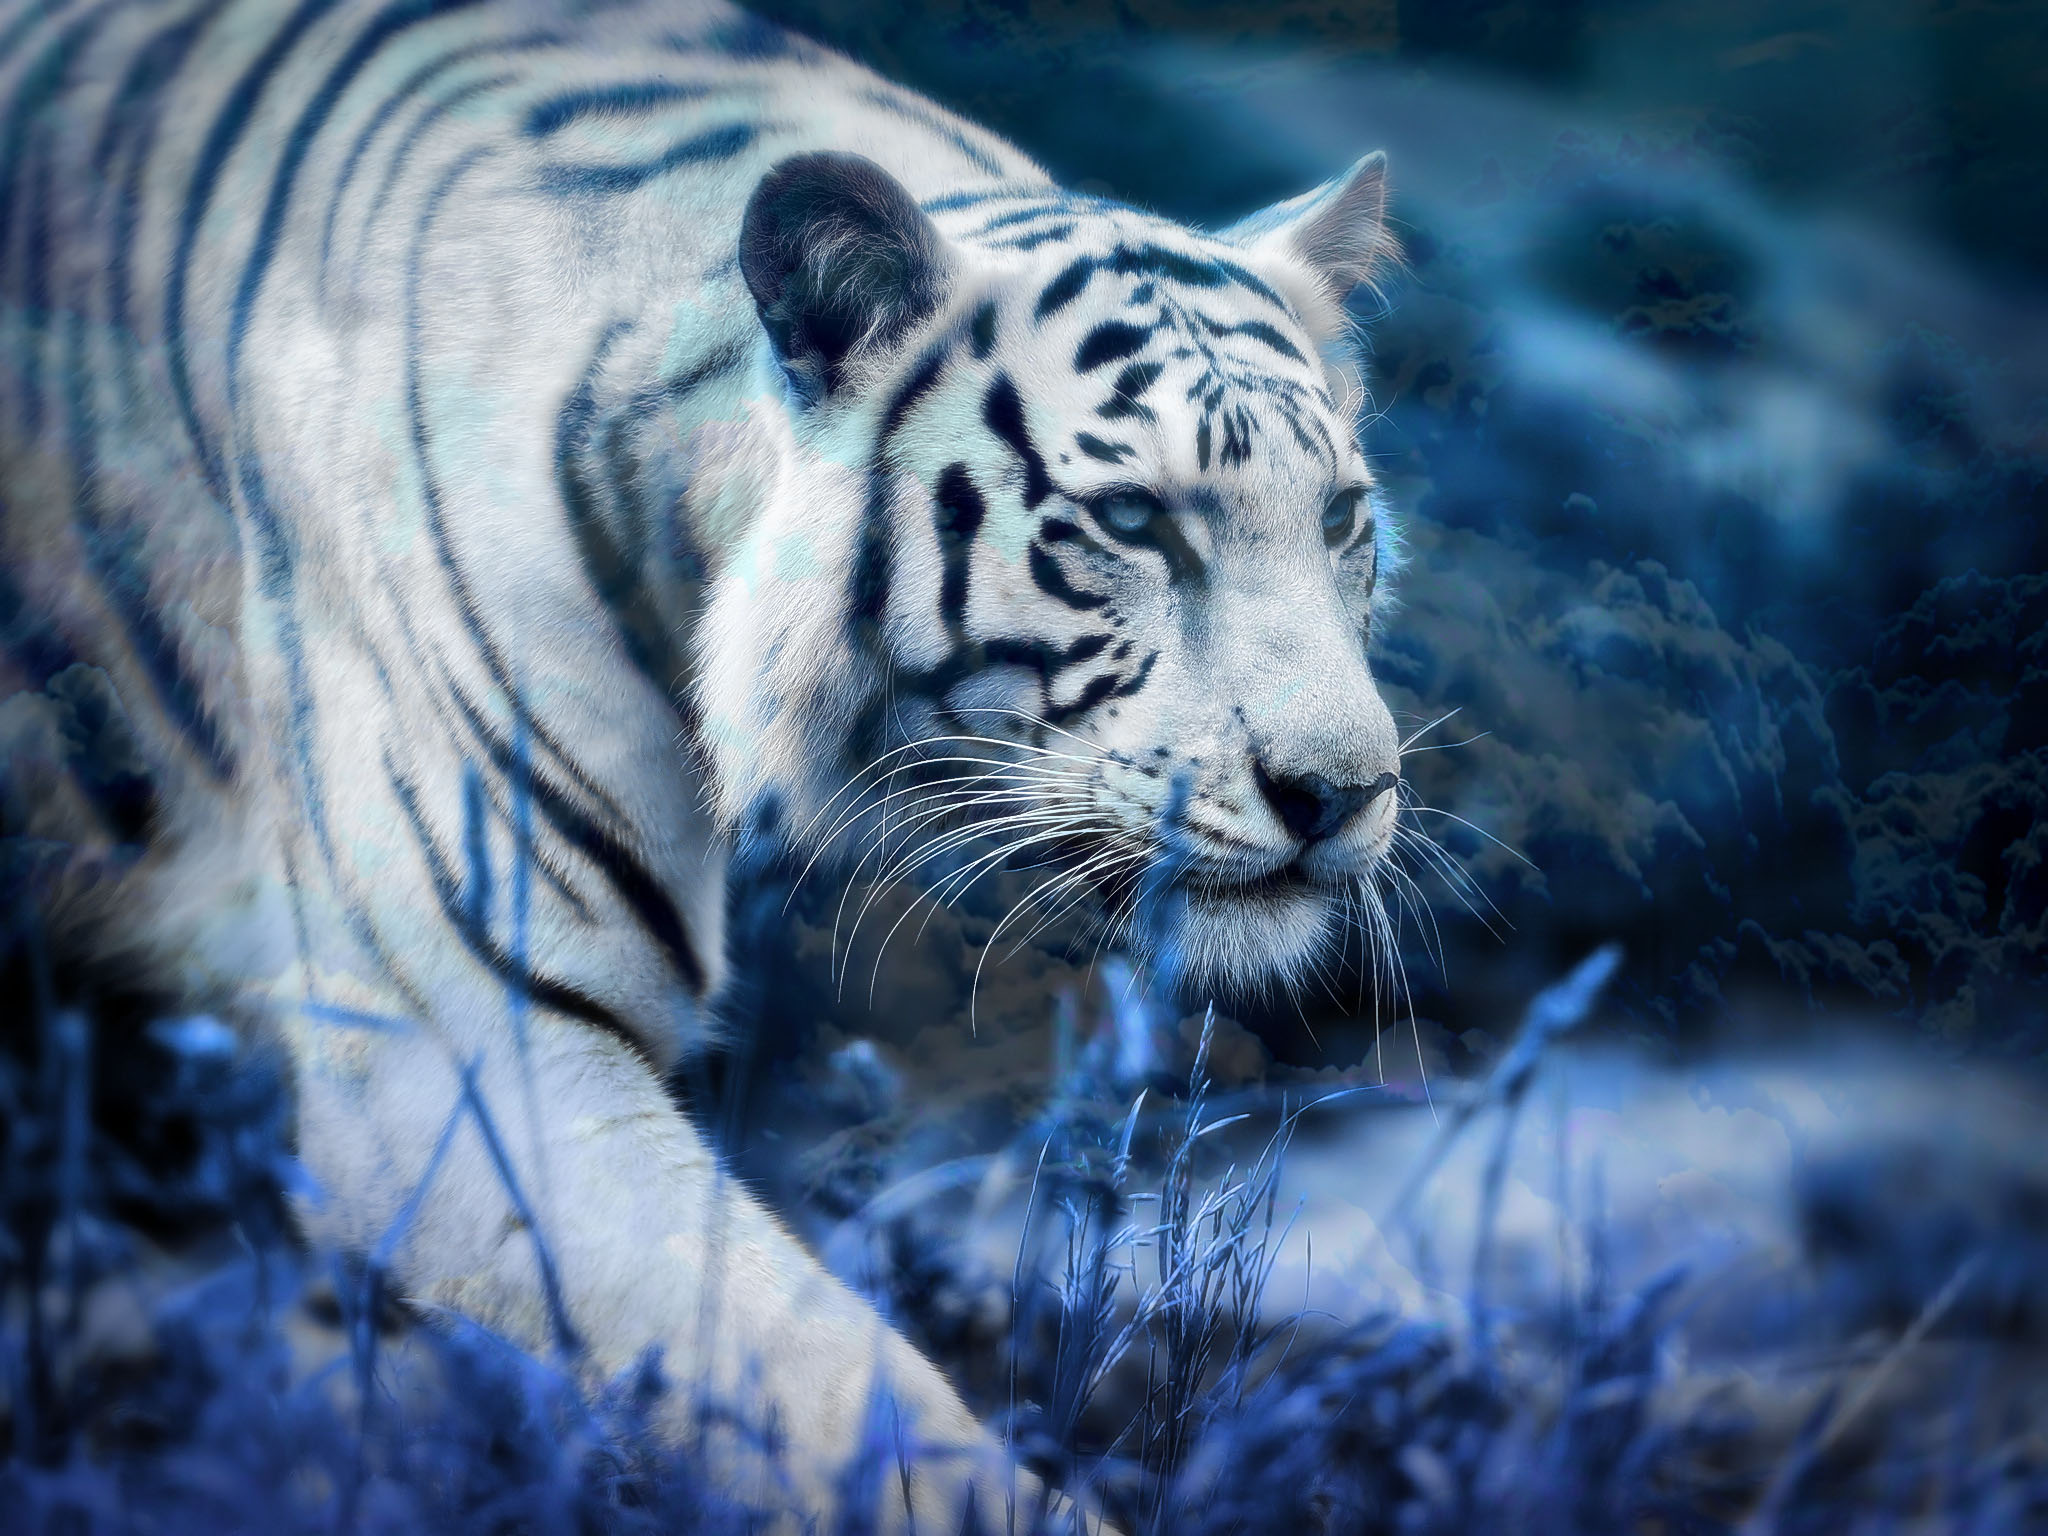 white tiger blue clouds hd wallpaper background image 2048x1536